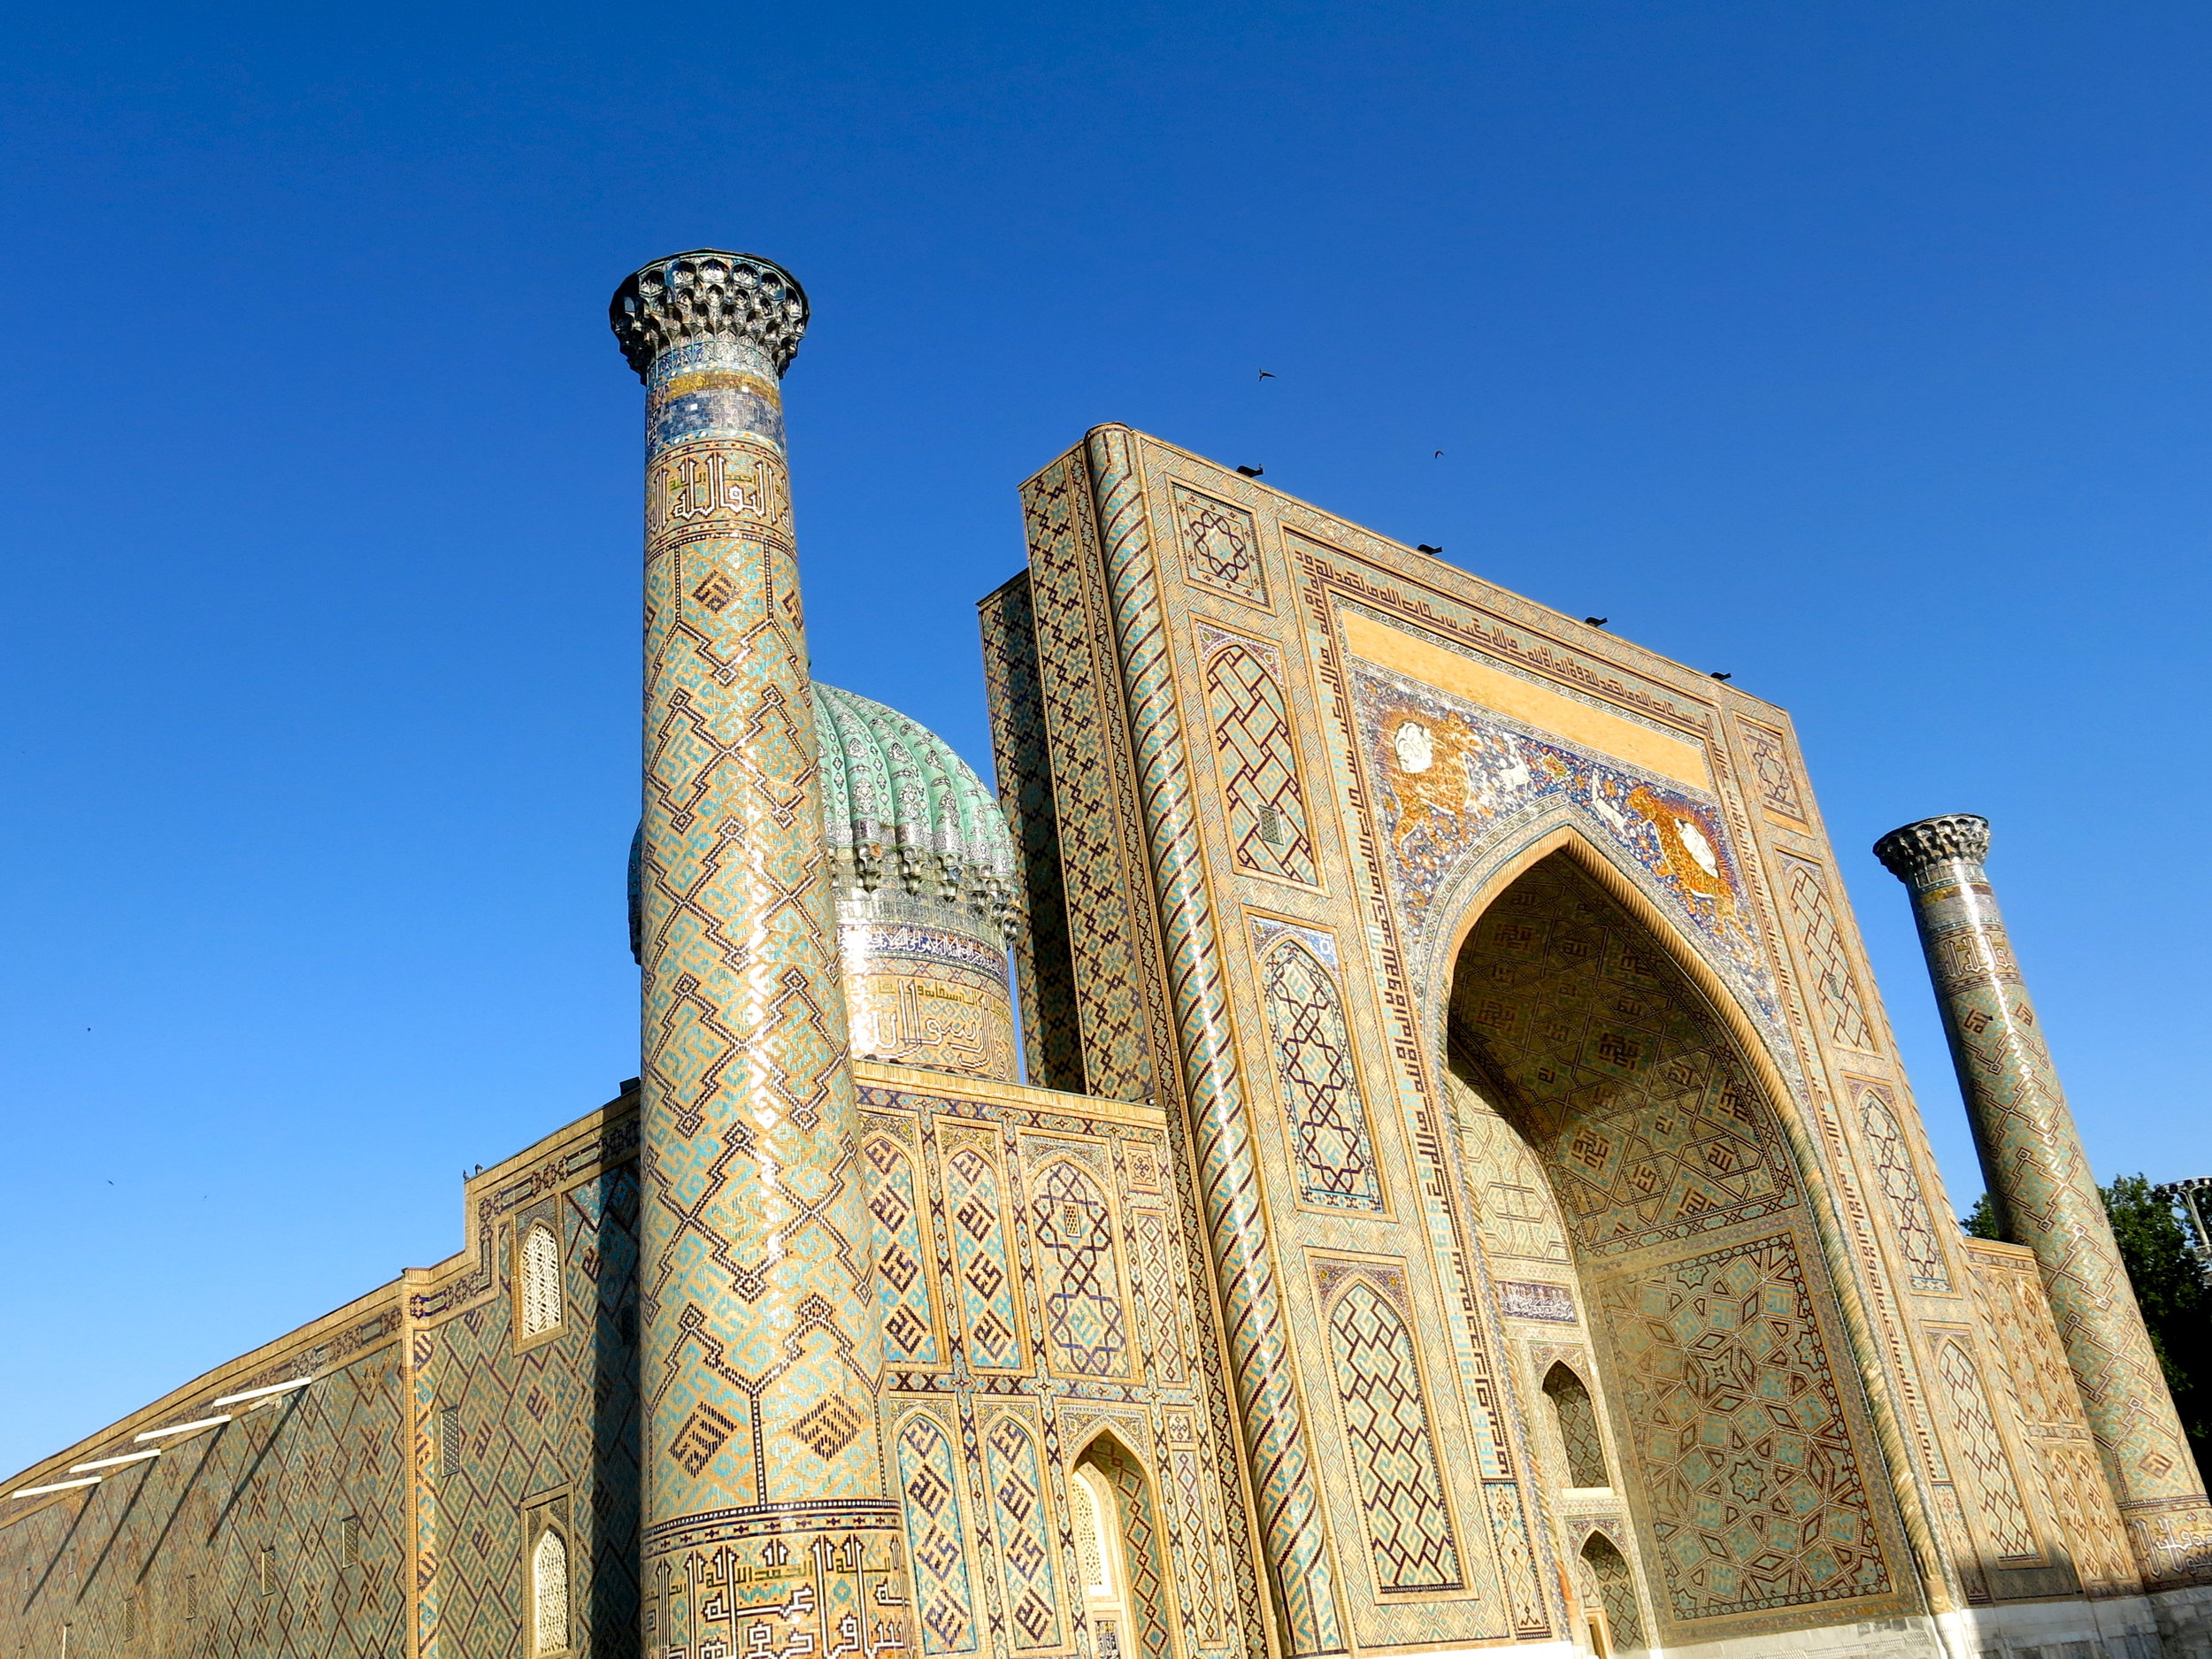 The beautiful Sher-Dor madrasa magnified by the sun